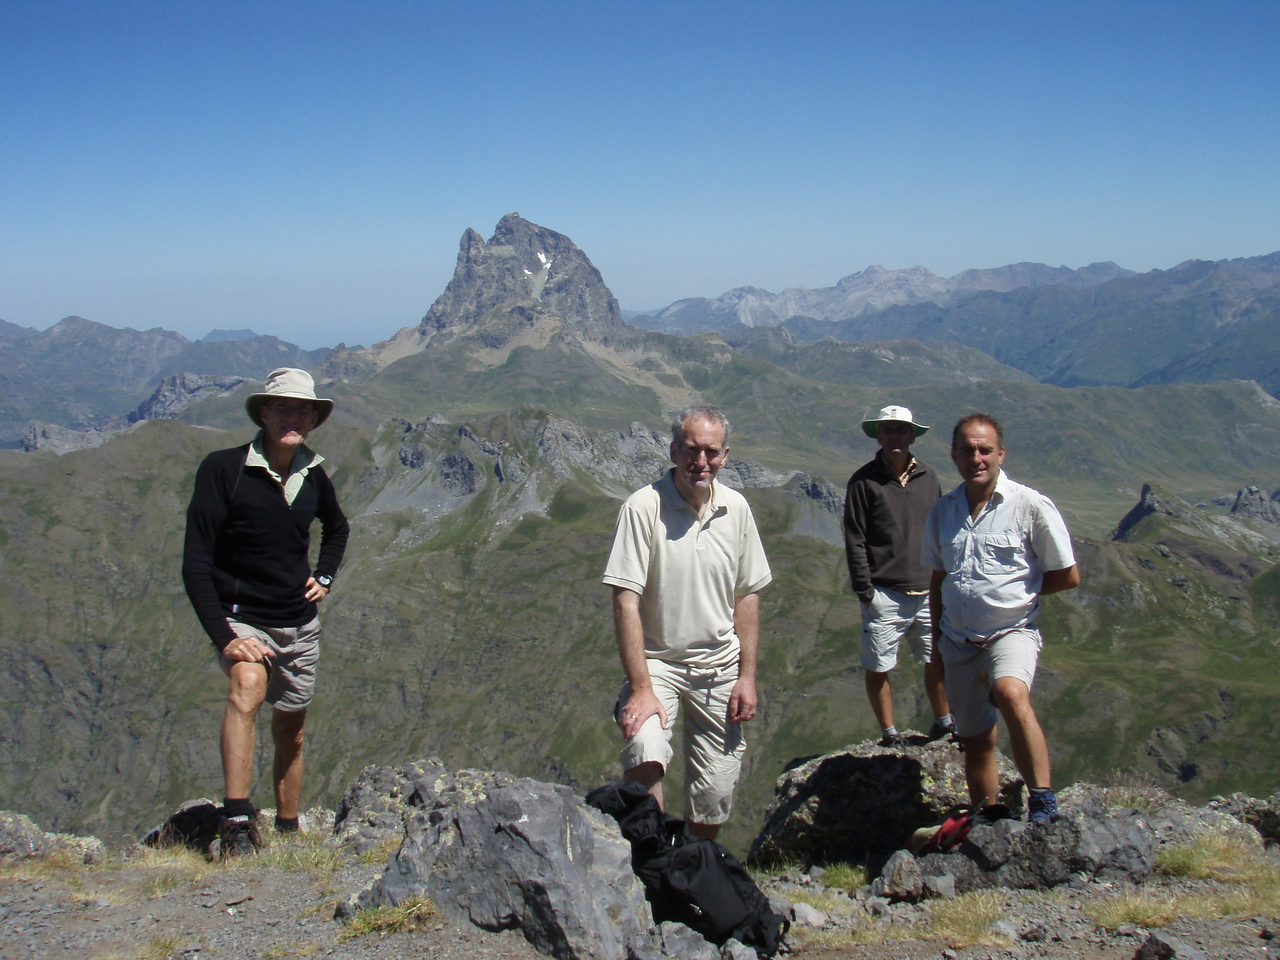 Vic, Edward, Gareth and Alfred on the summit of Pico de Anayet with Peña Blanca in the background